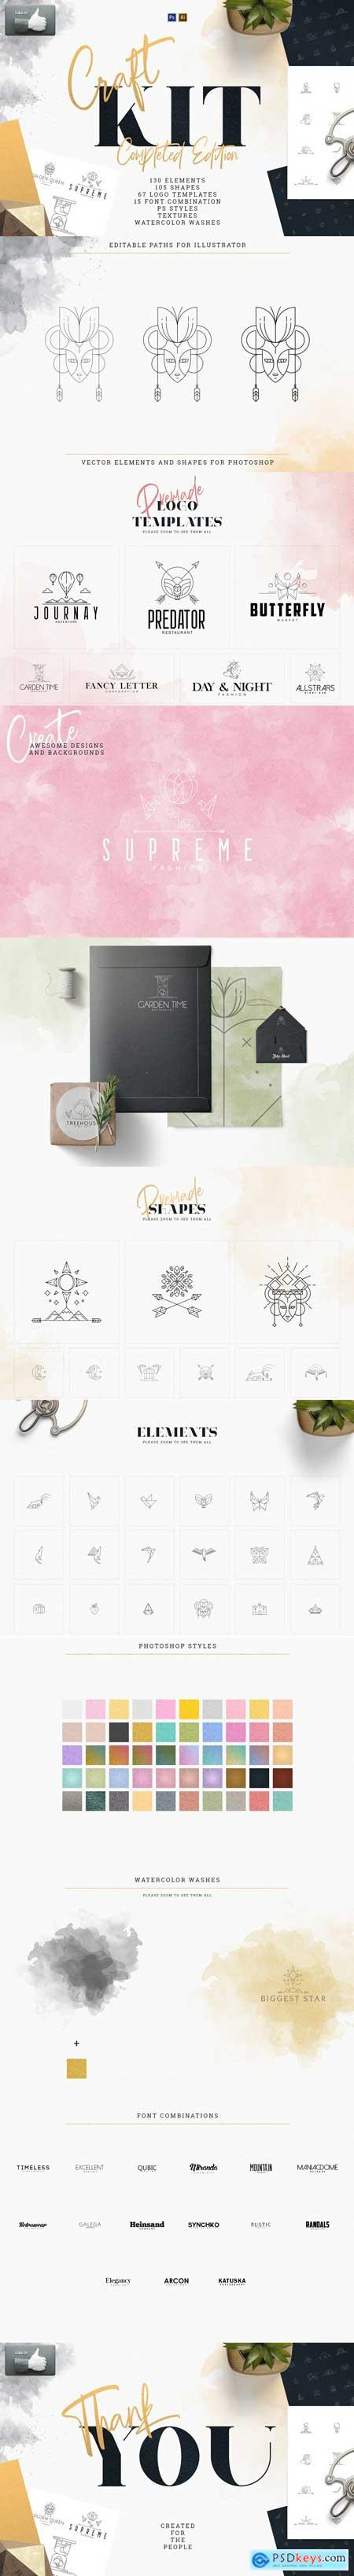 Creativemarket Craft Kit - Completed Edition